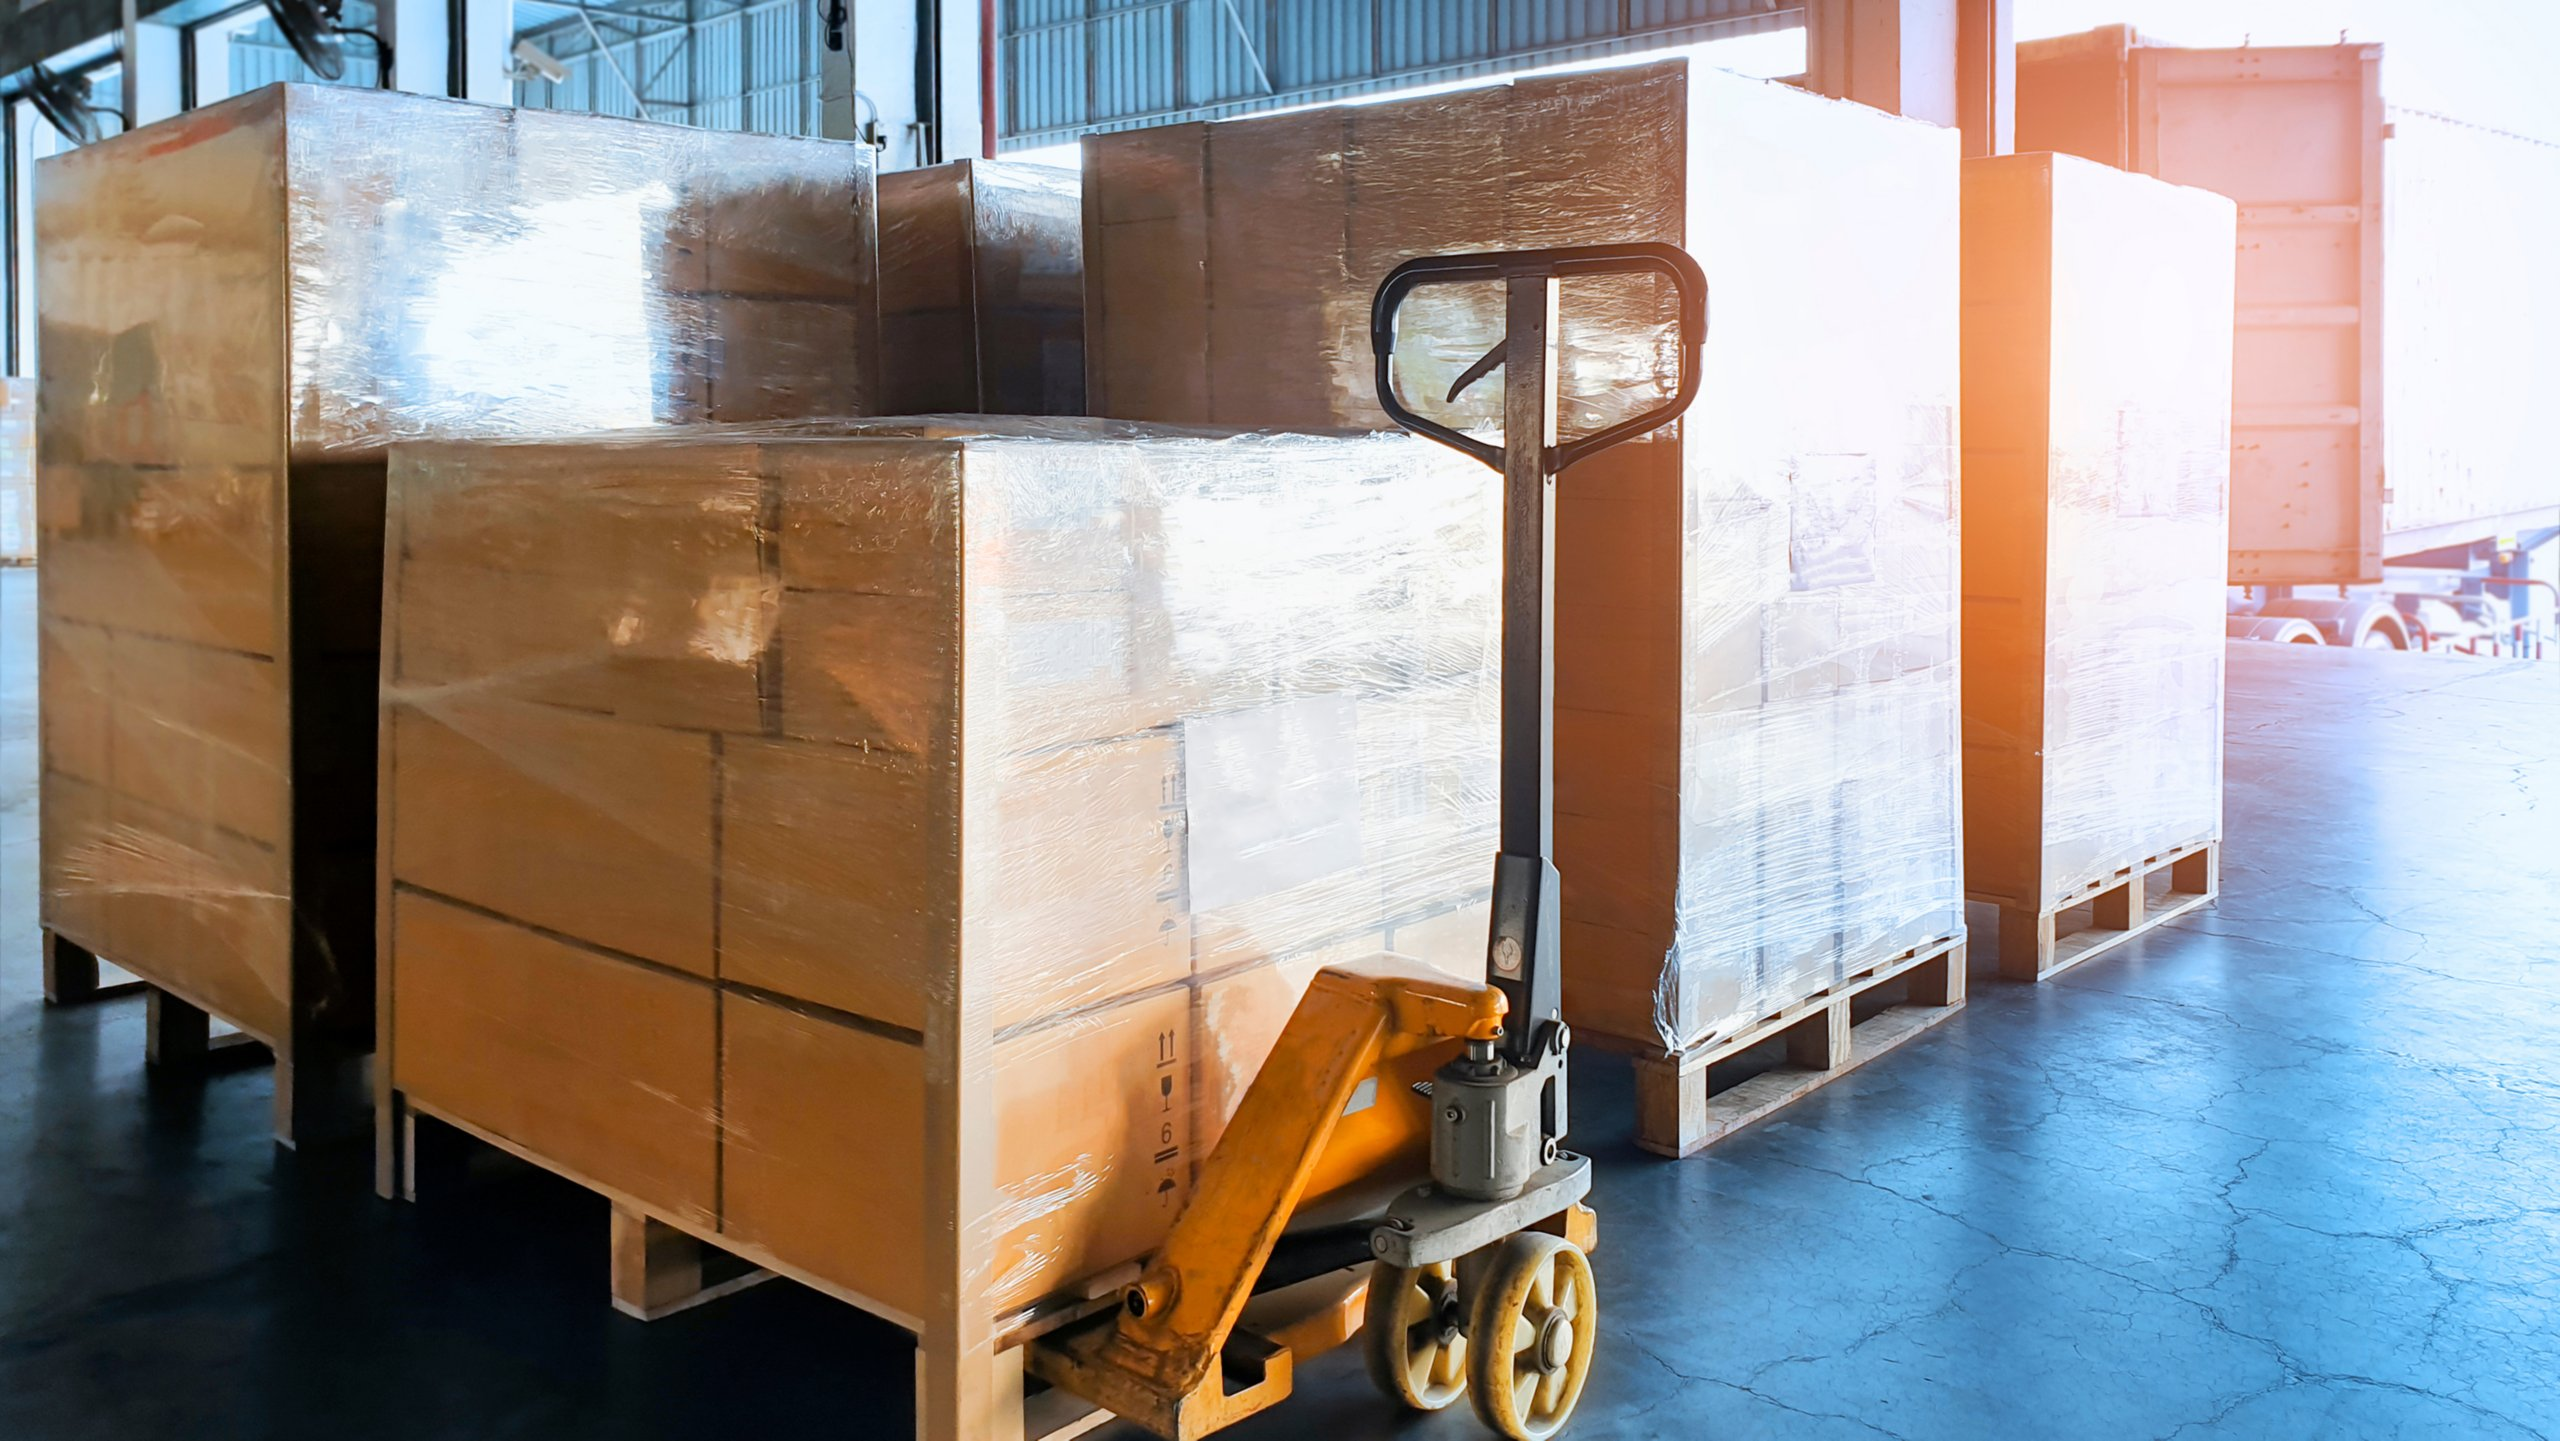 Cardboard boxes stacked and wrapped in plastic for shipping in warehouse